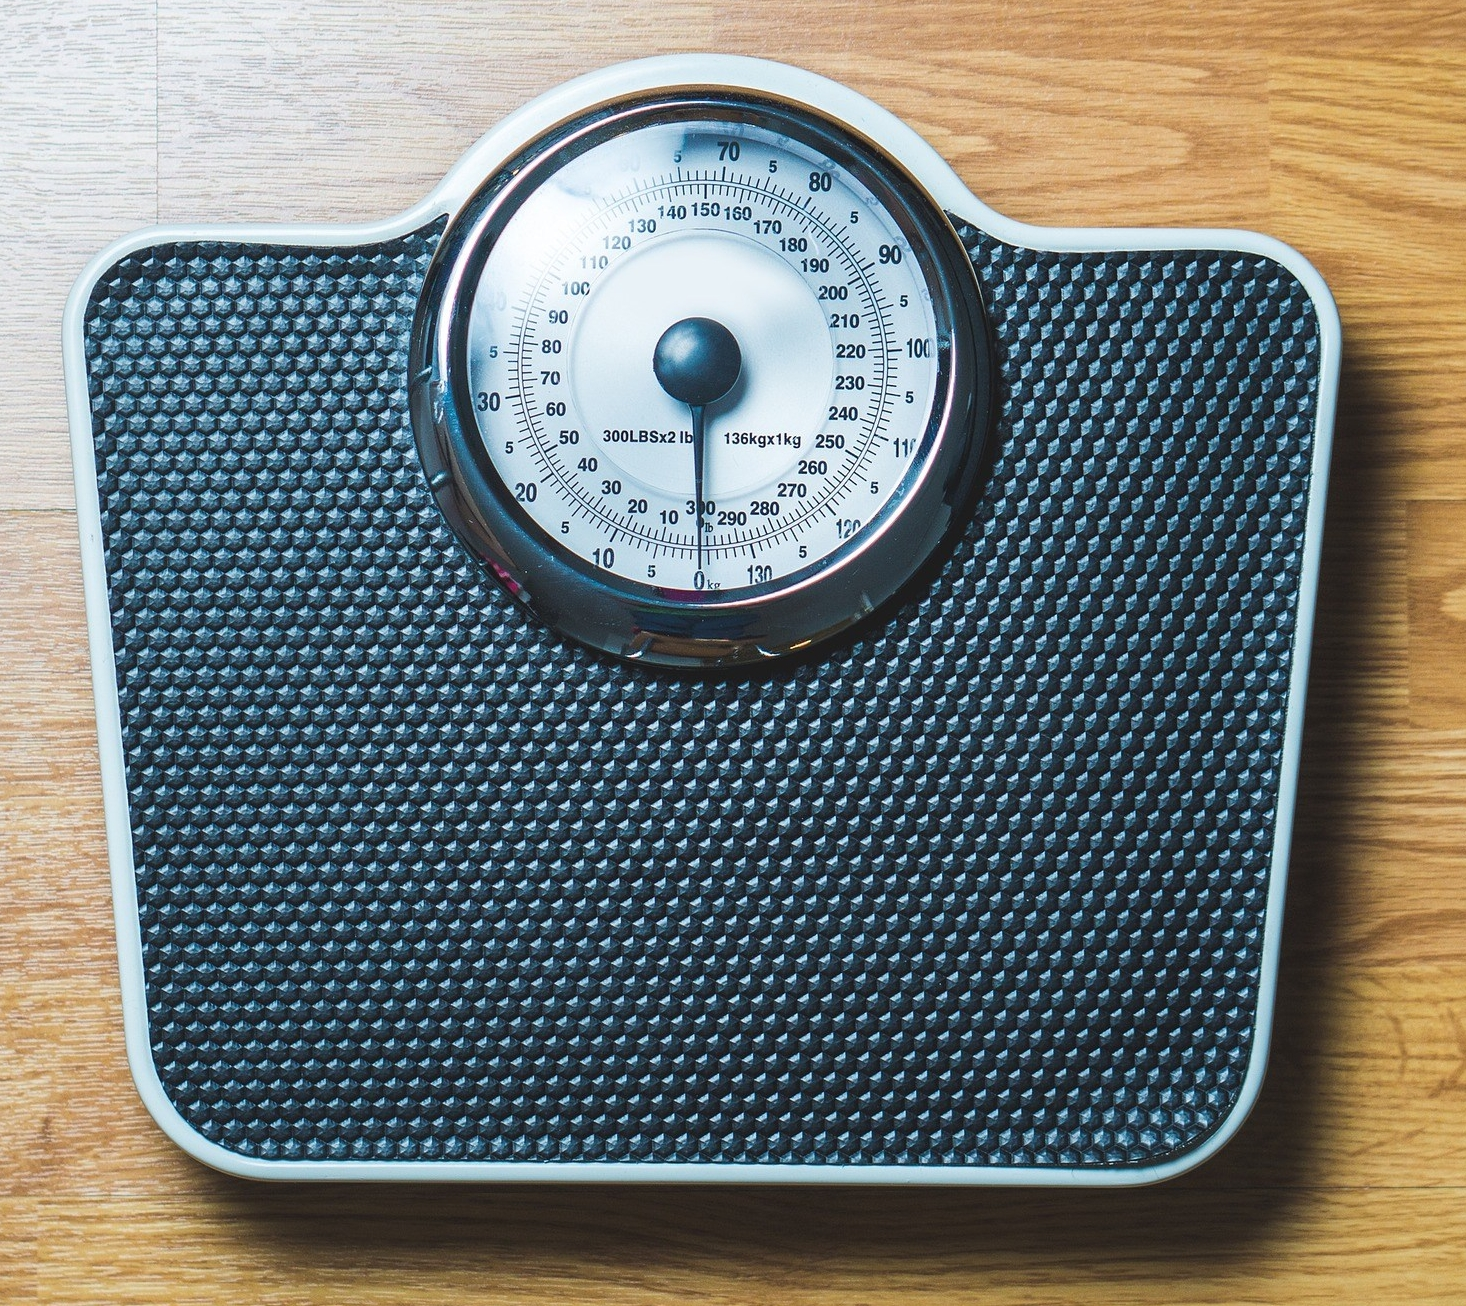 weight-image-by-terovesalainen-from-pixabay-.jpg